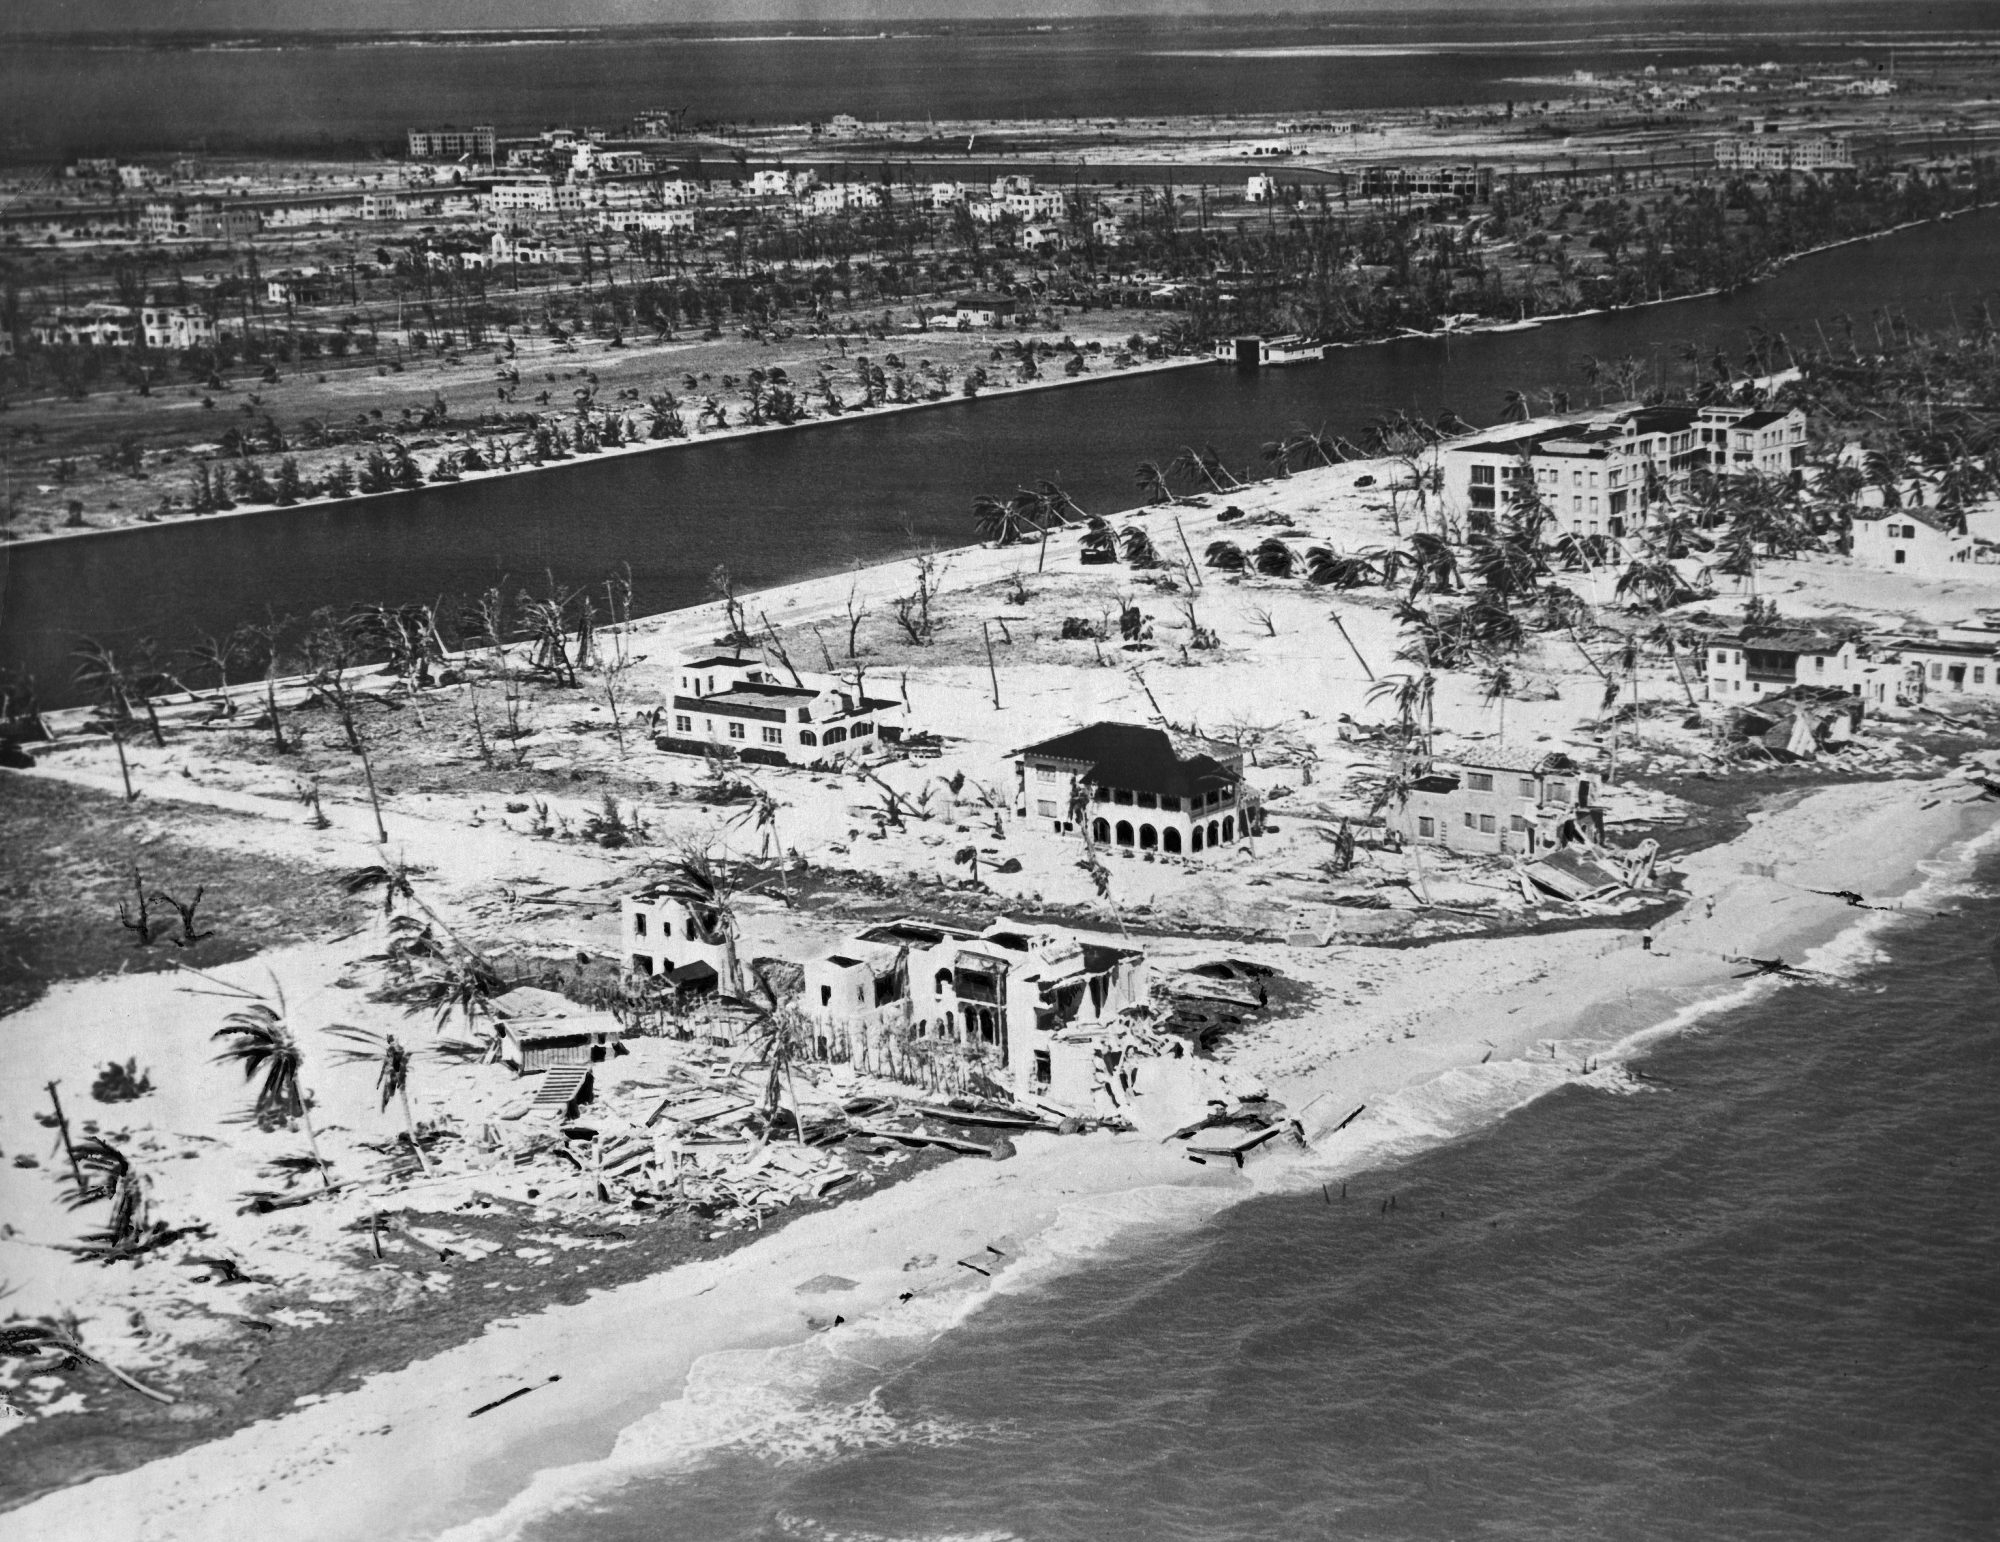 The true tragedy of the 1926 Miami Hurricane was that, as the eye passed over the city, residents thought the storm was over and left their shelters. The worst part of the hurricane, with 10-foot storm surge, was yet to come. Inland, high winds blew water from Lake Okeechobee toward the shore and the town of Moore Haven, which was almost completely flooded and remained so for weeks after the storm. Damages were estimated at $105 million—more than $1 trillion in today's dollars.